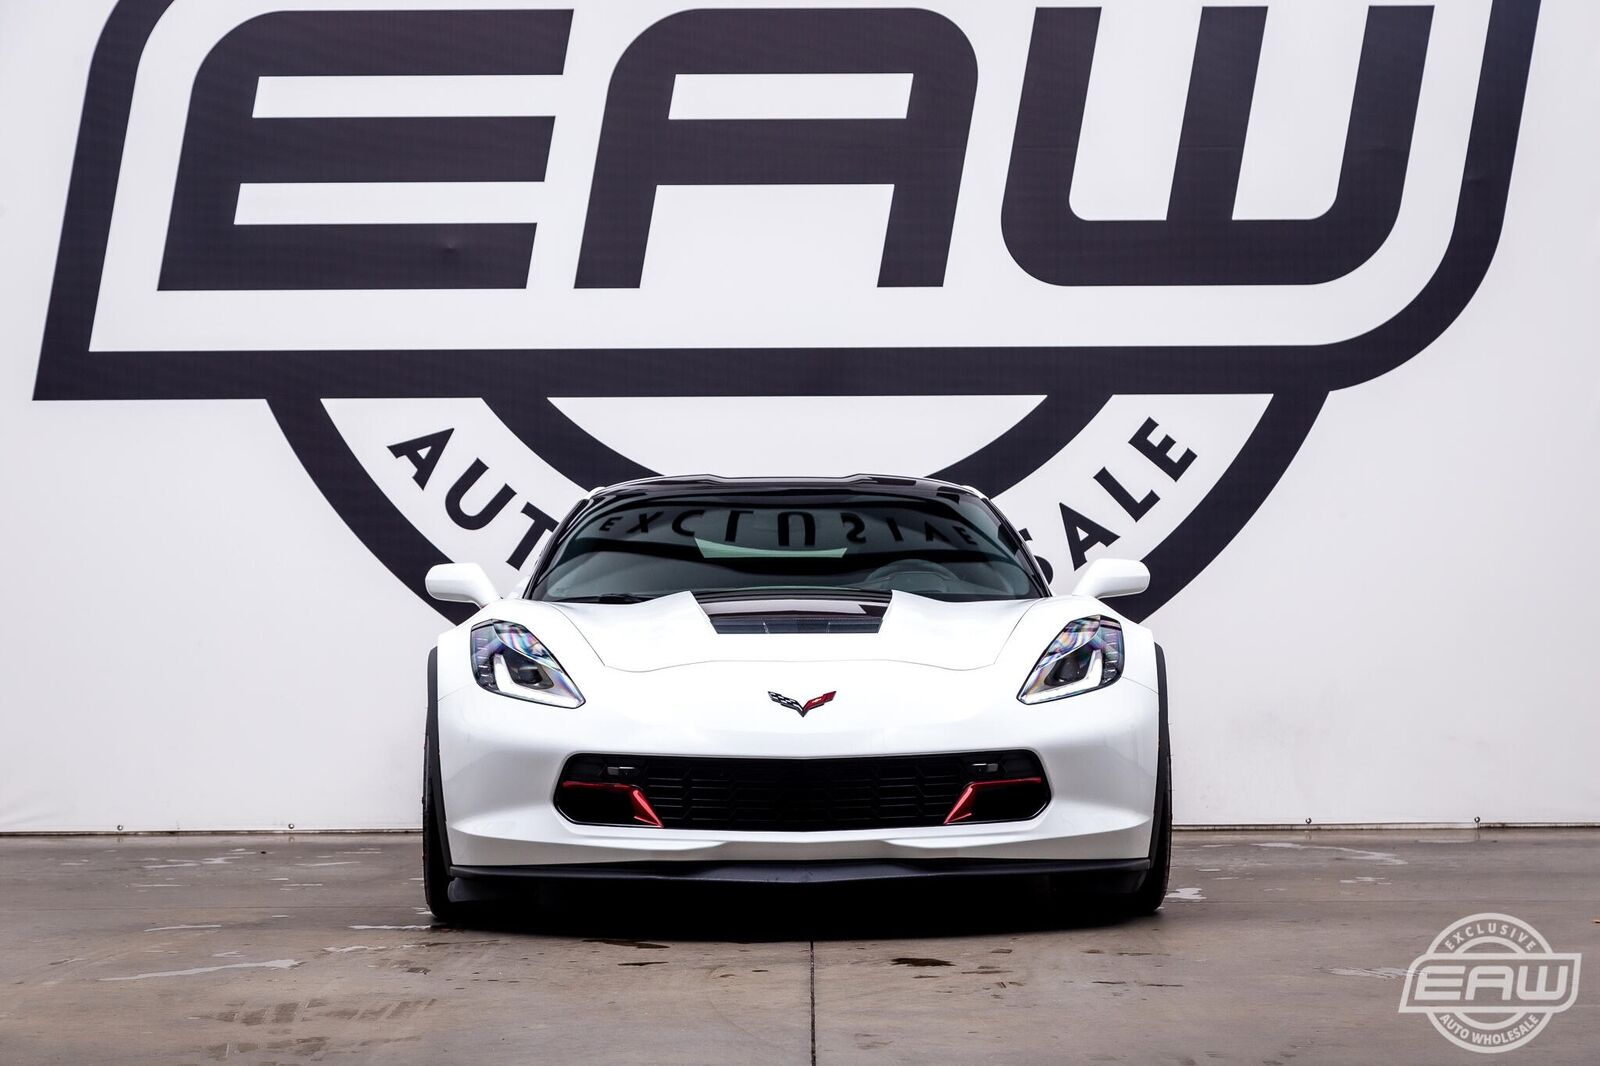 2017 White Chevrolet Corvette Grand Sport 3LT | C7 Corvette Photo 6